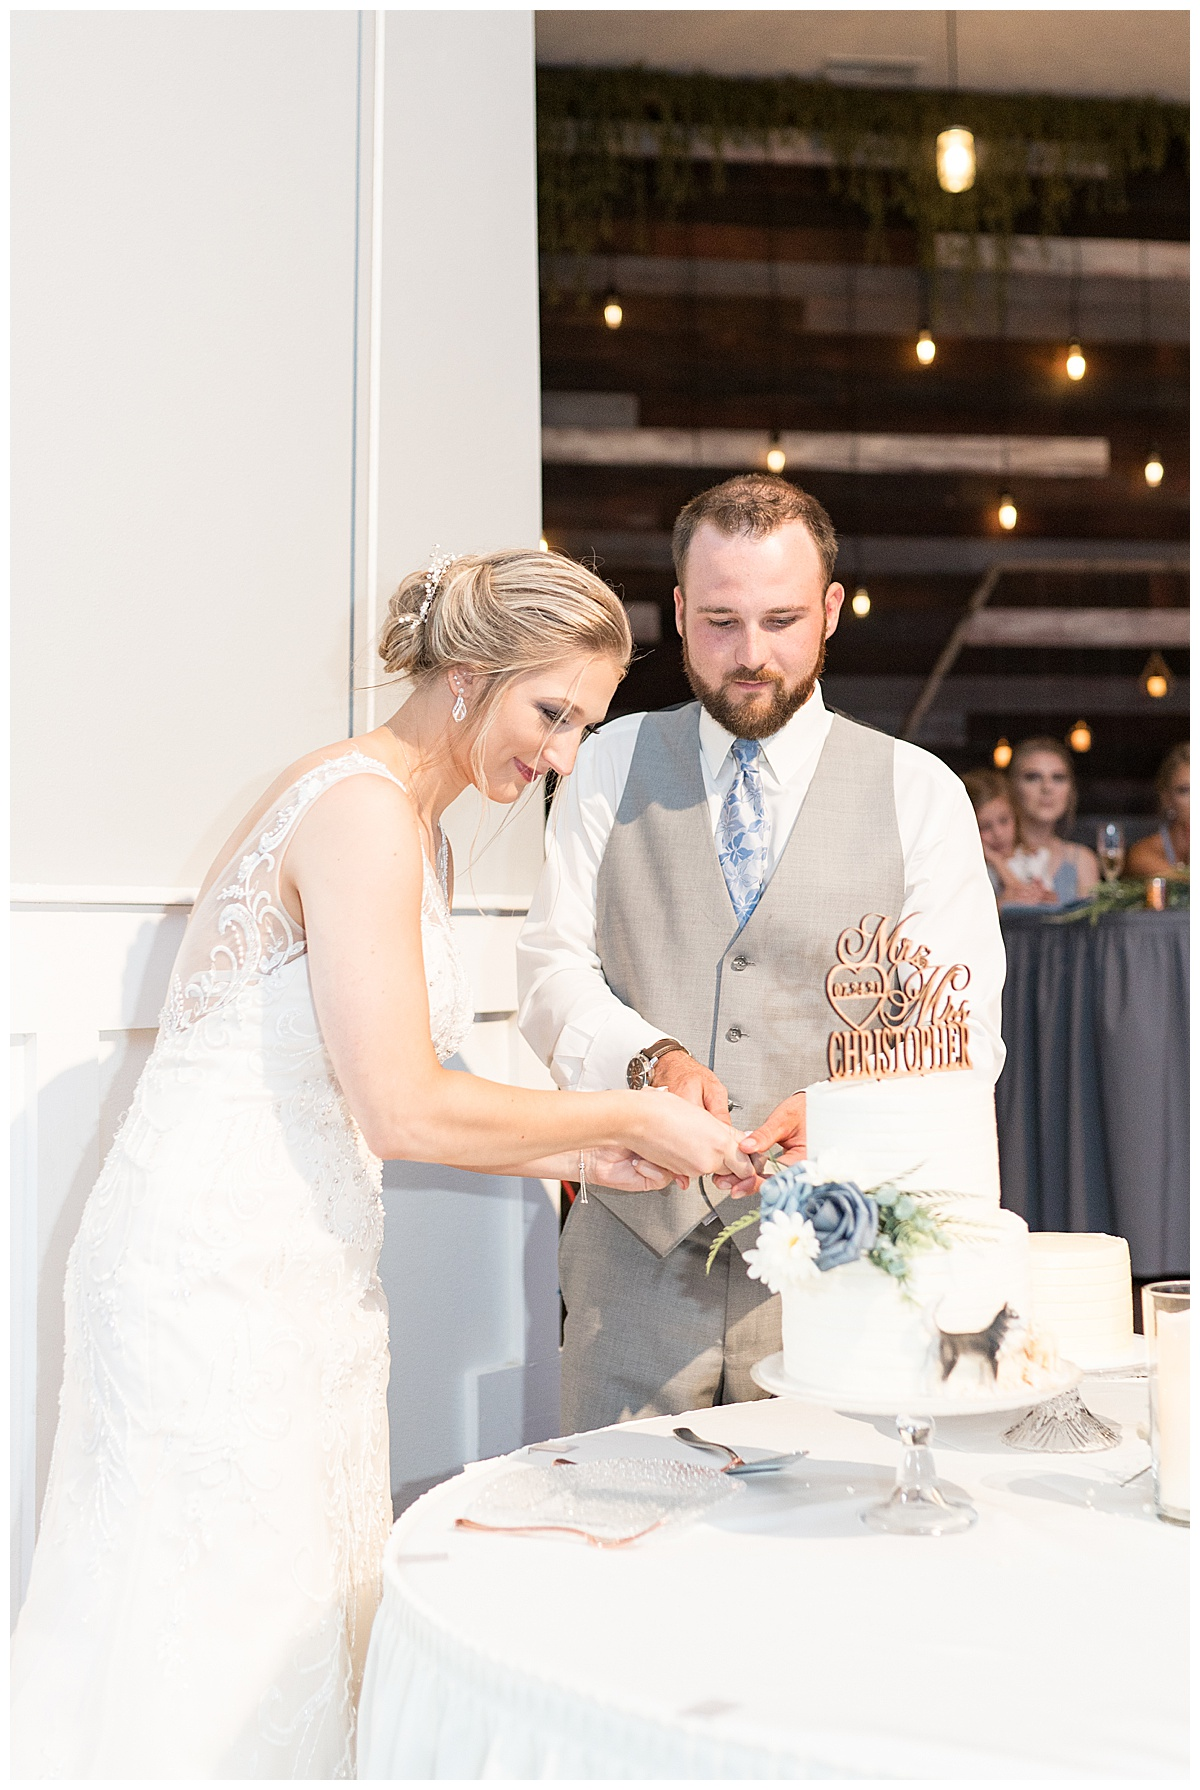 Cake cutting at Gathering Acres wedding reception in Lafayette, Indiana